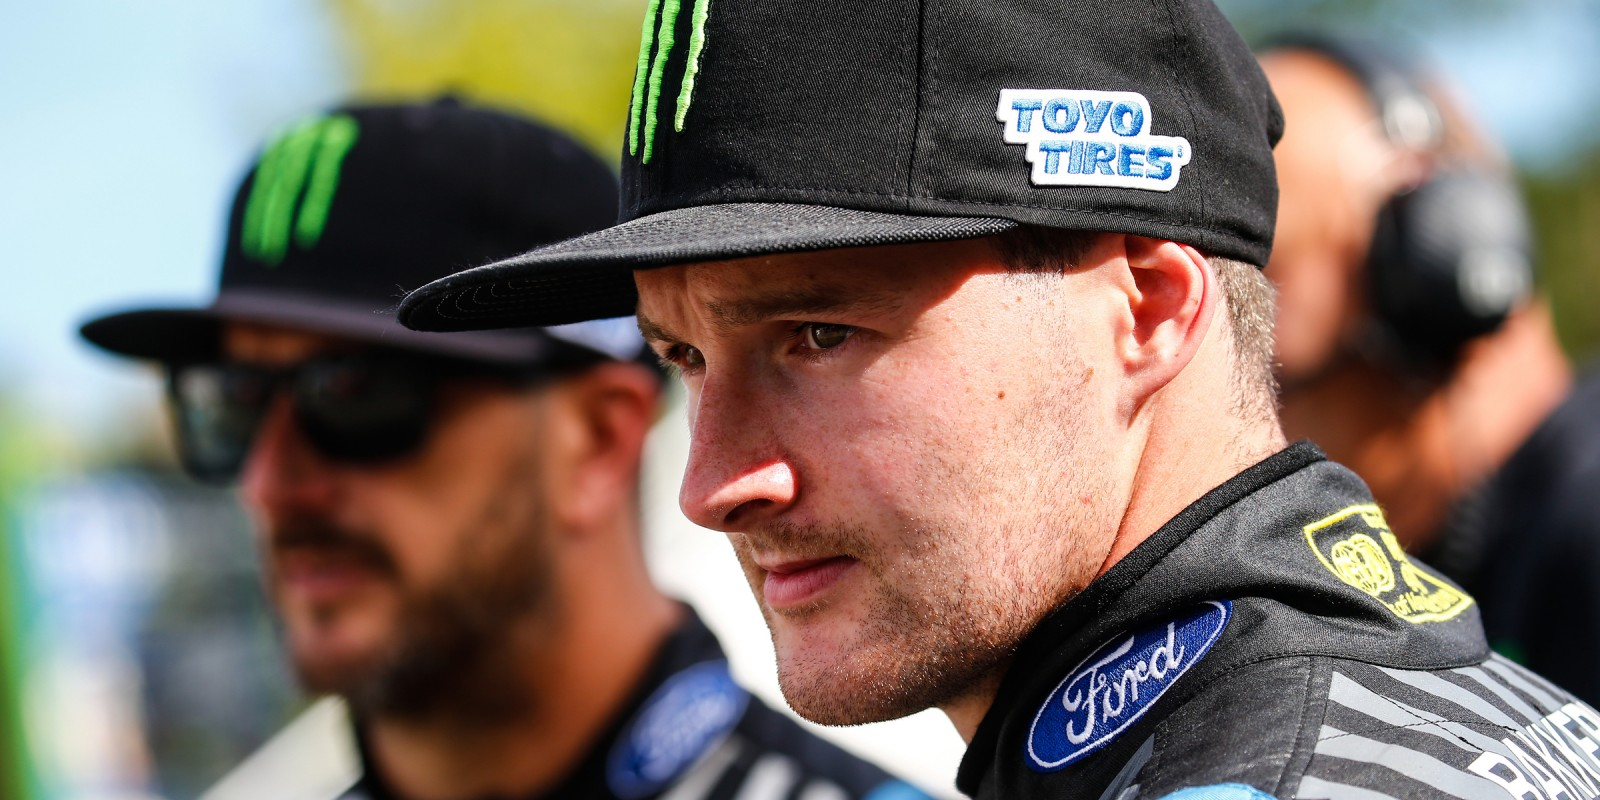 Saturday / Day One images of Andreas Bakkerud at the World RX of France